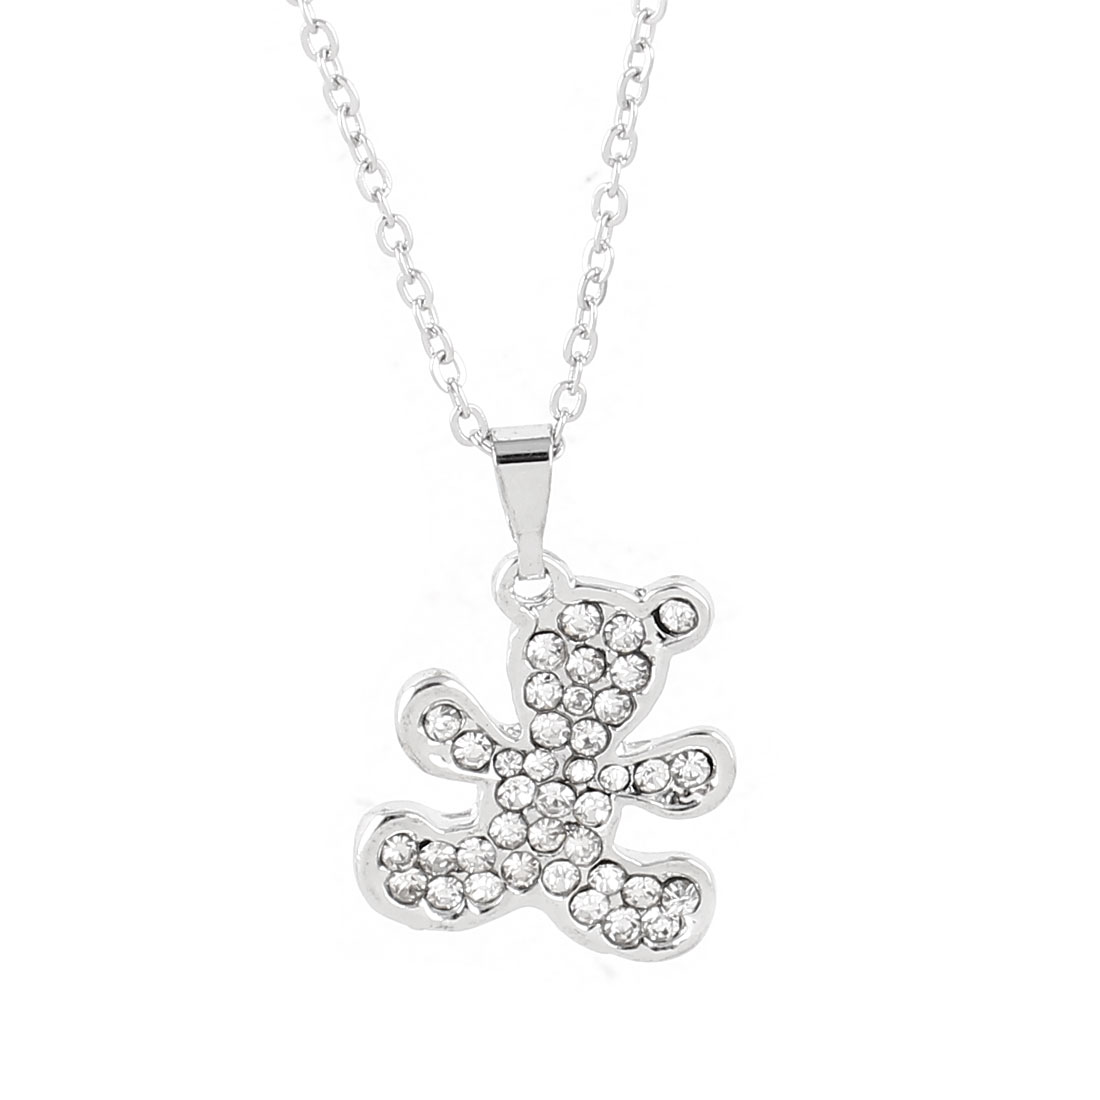 Lady Silver Tone Chain Link Rhinestone Detailing Bear Pendant Necklace